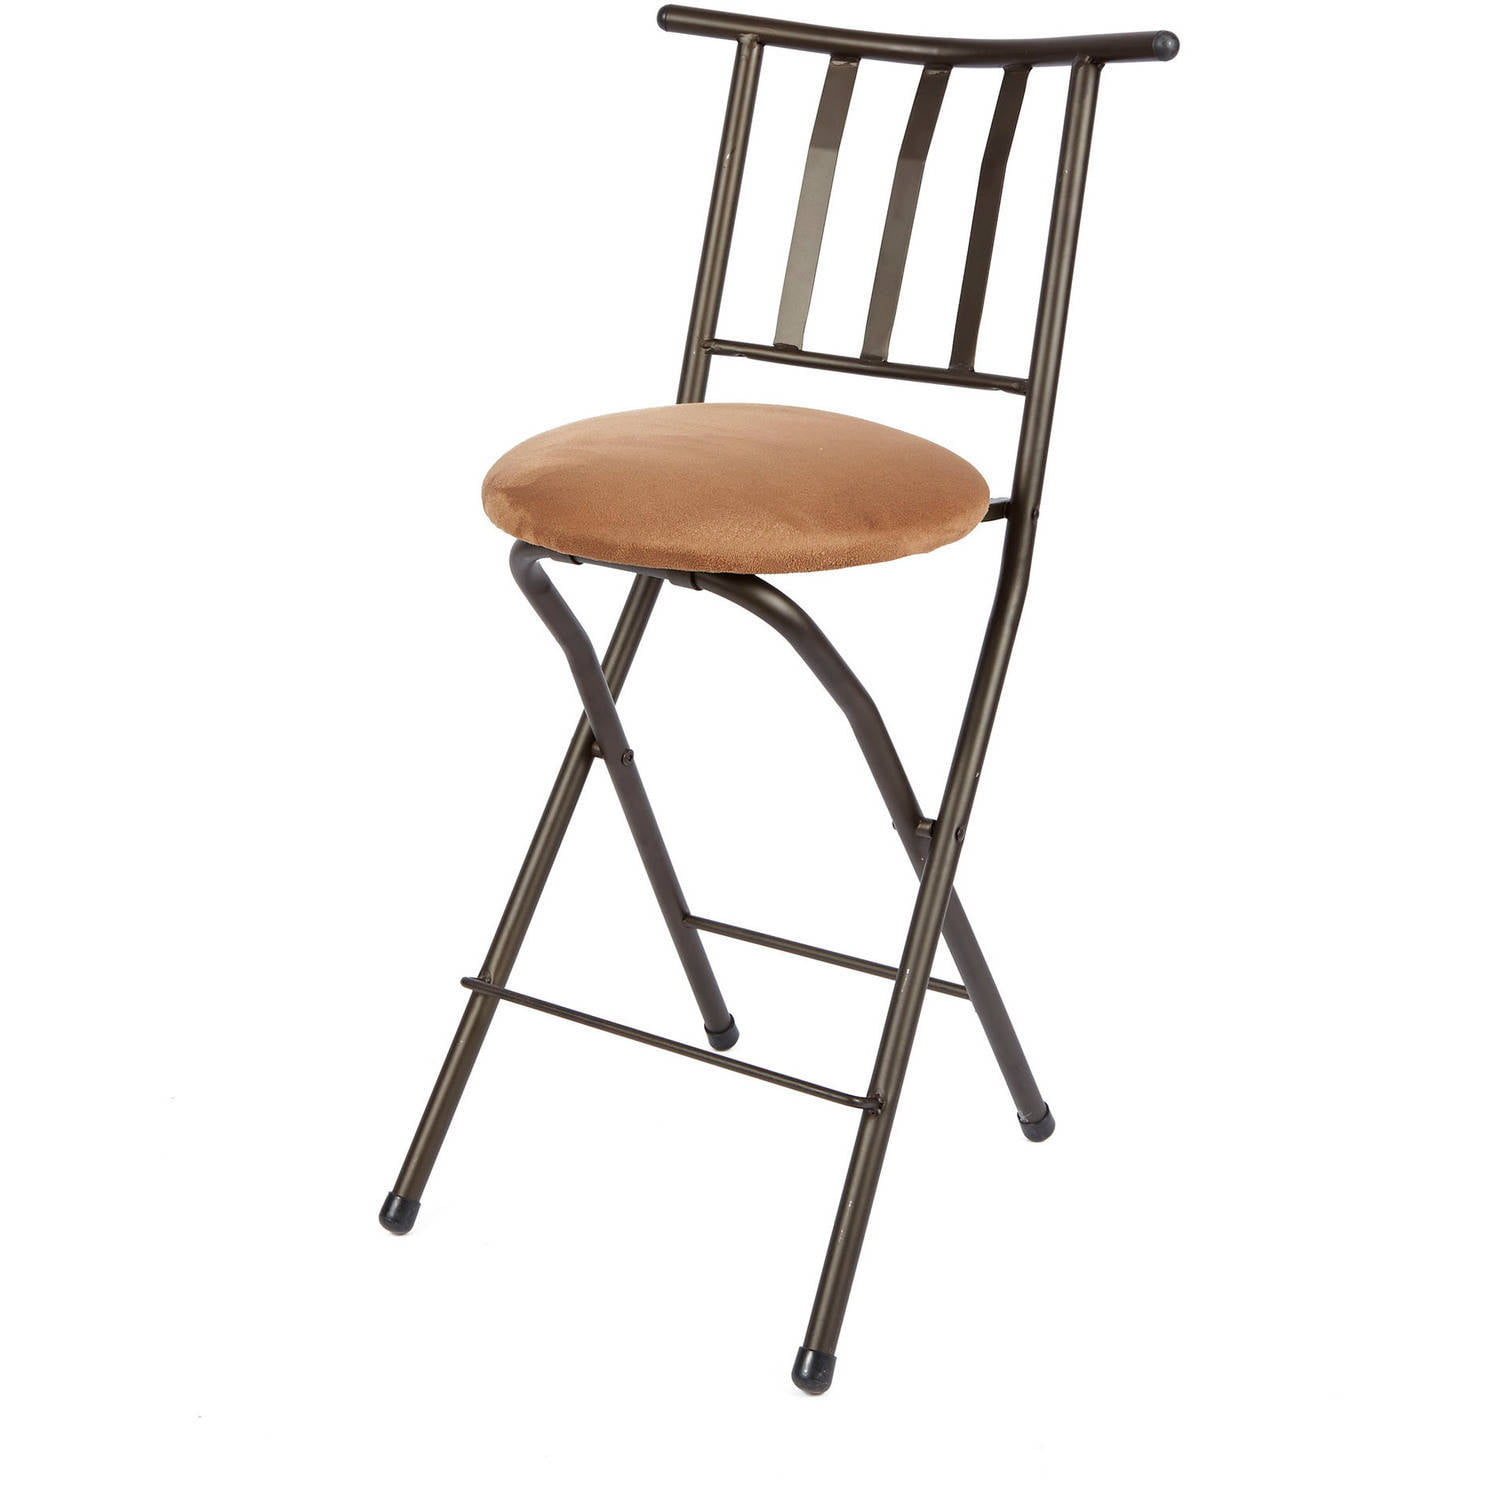 mainstays 24 slat back counter height barstool multiple colors beige ebay. Black Bedroom Furniture Sets. Home Design Ideas